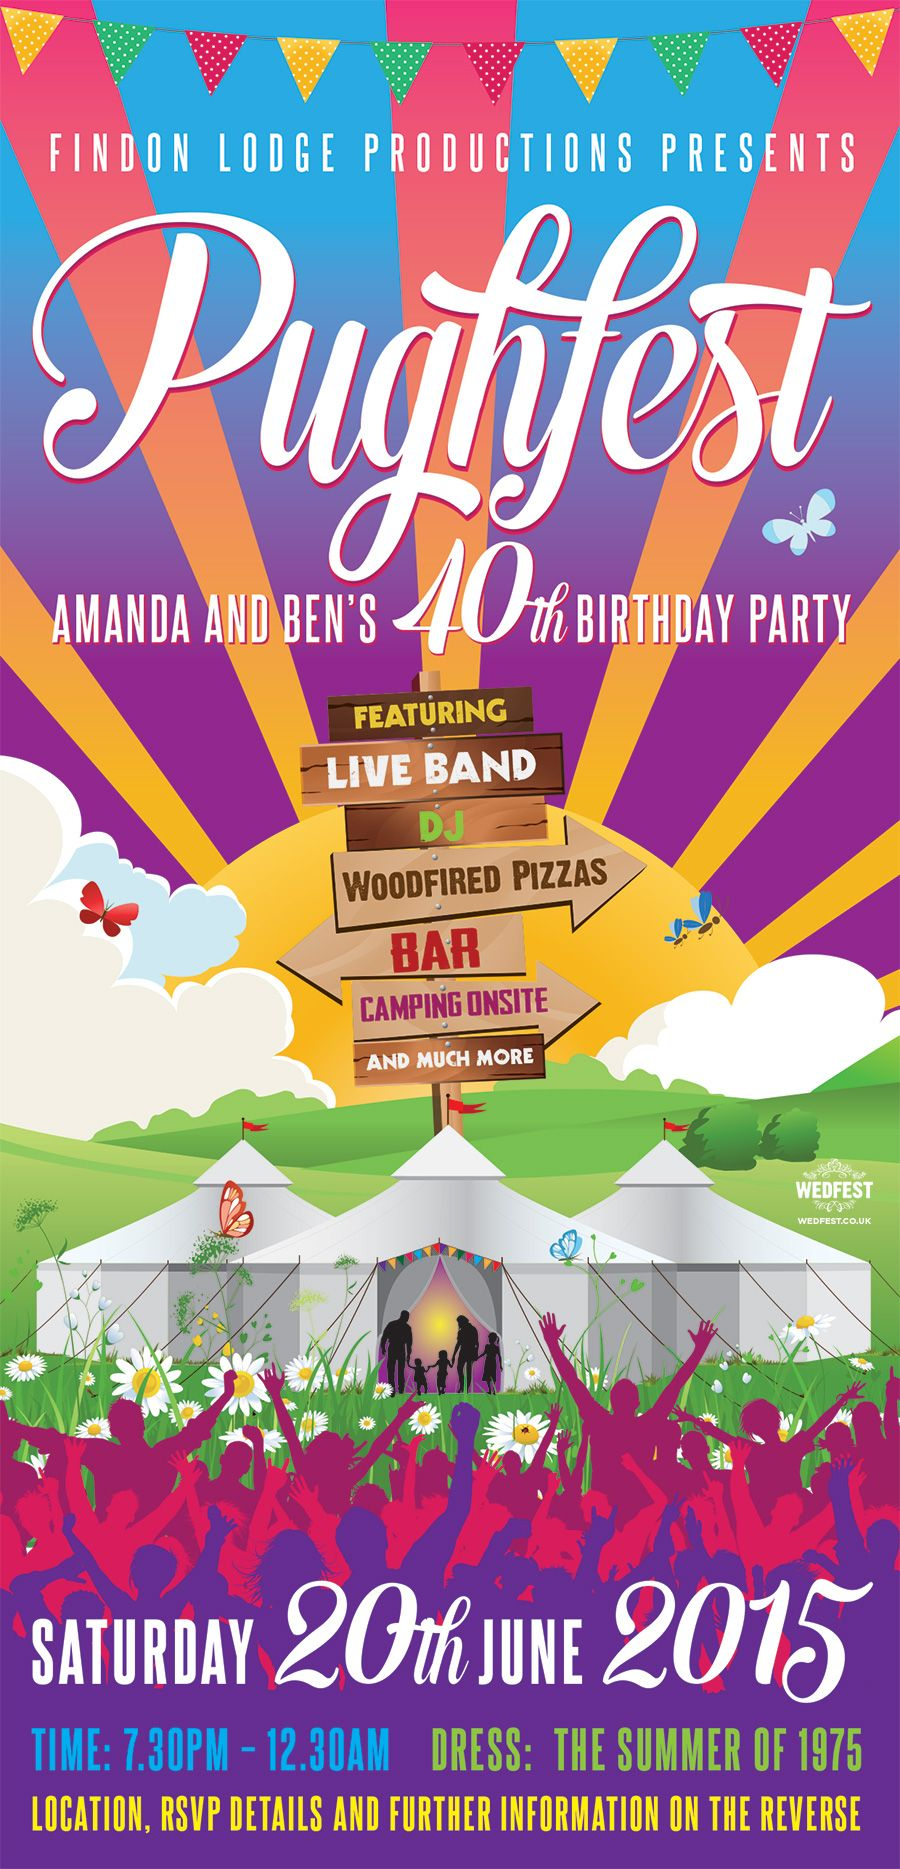 Festival Themed 40th Birthday Invite http://www.wedfest.co ...